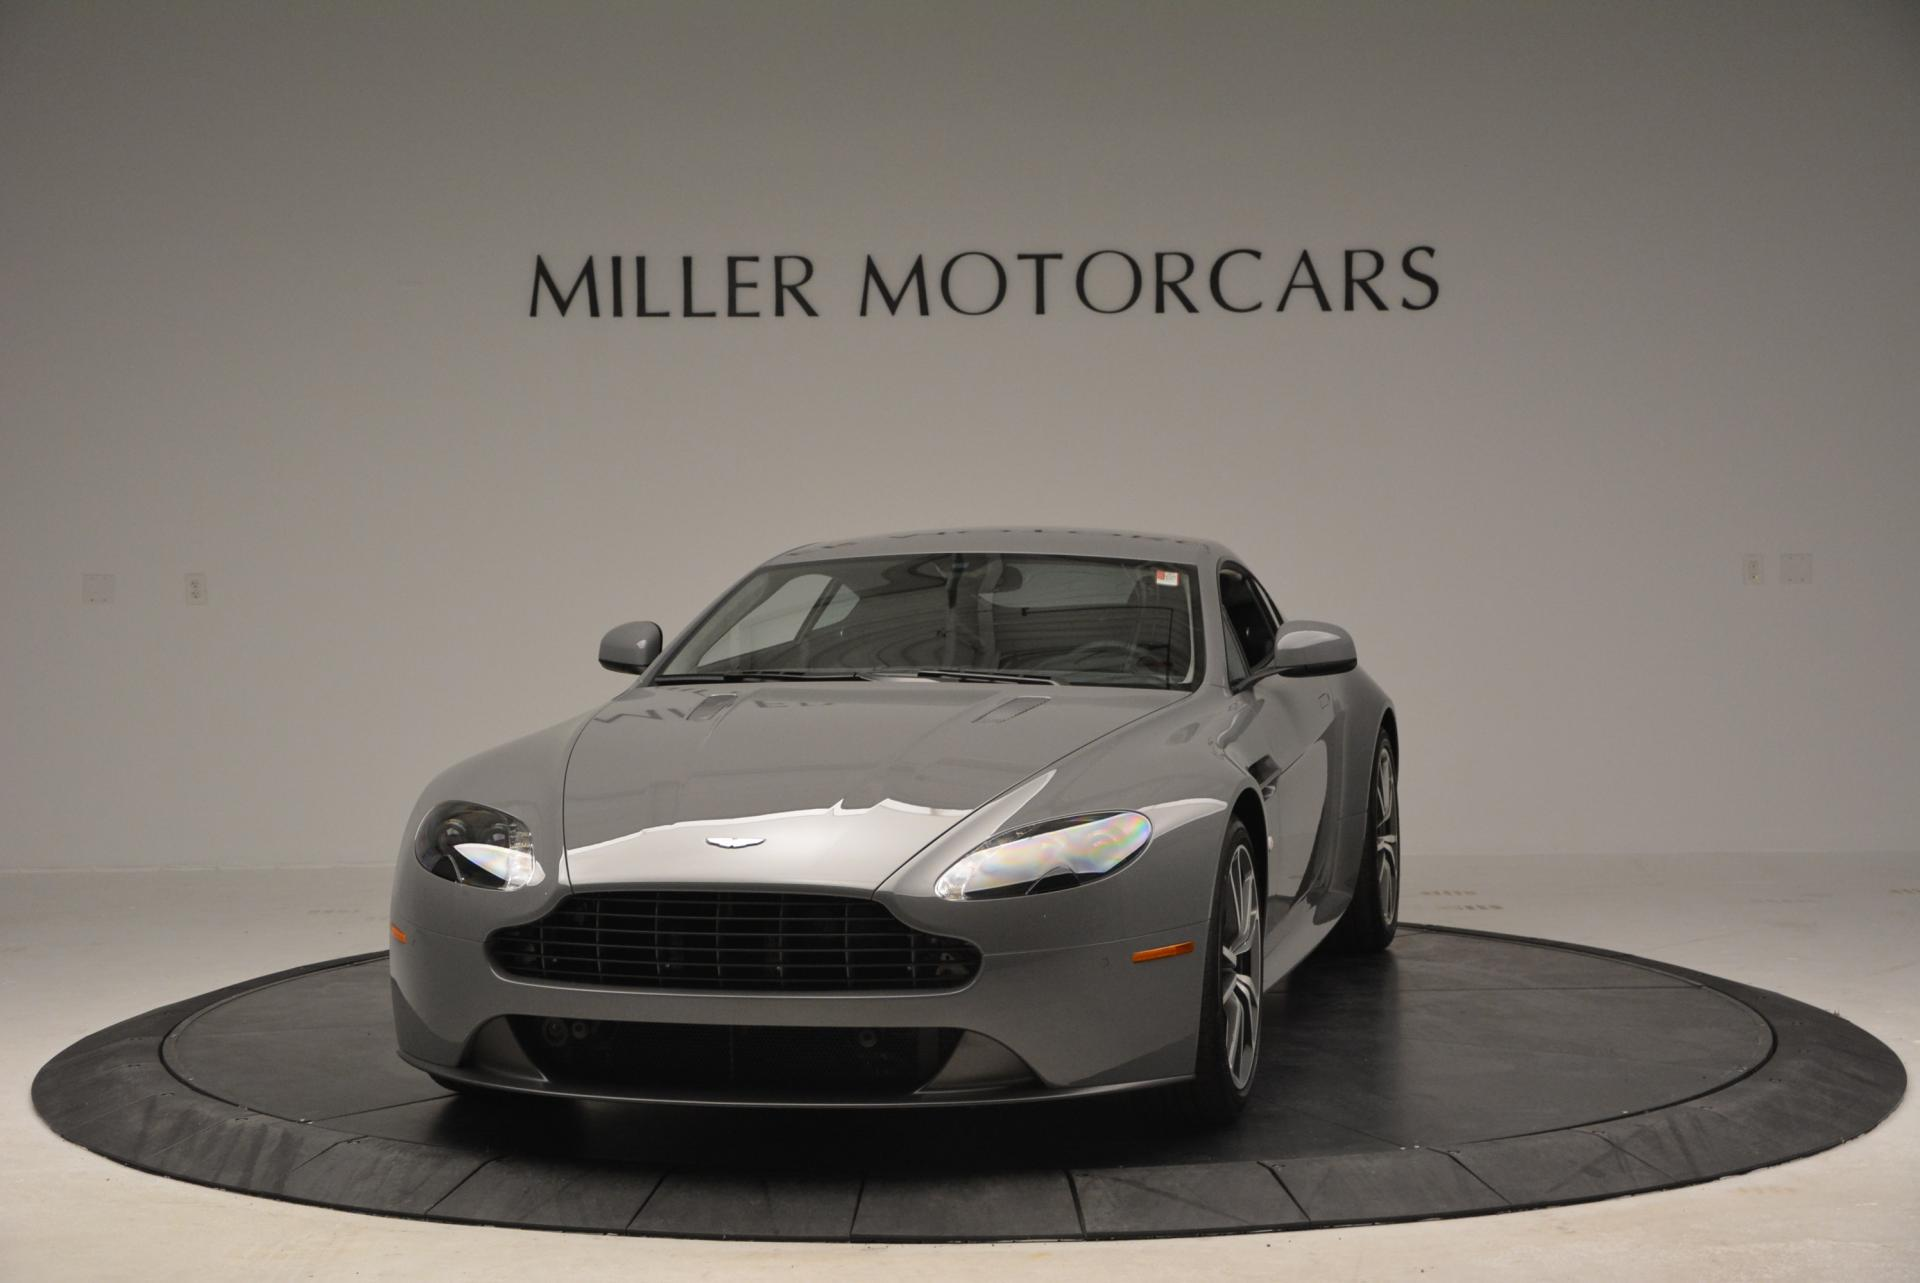 New 2016 Aston Martin Vantage GT for sale Sold at Bentley Greenwich in Greenwich CT 06830 1